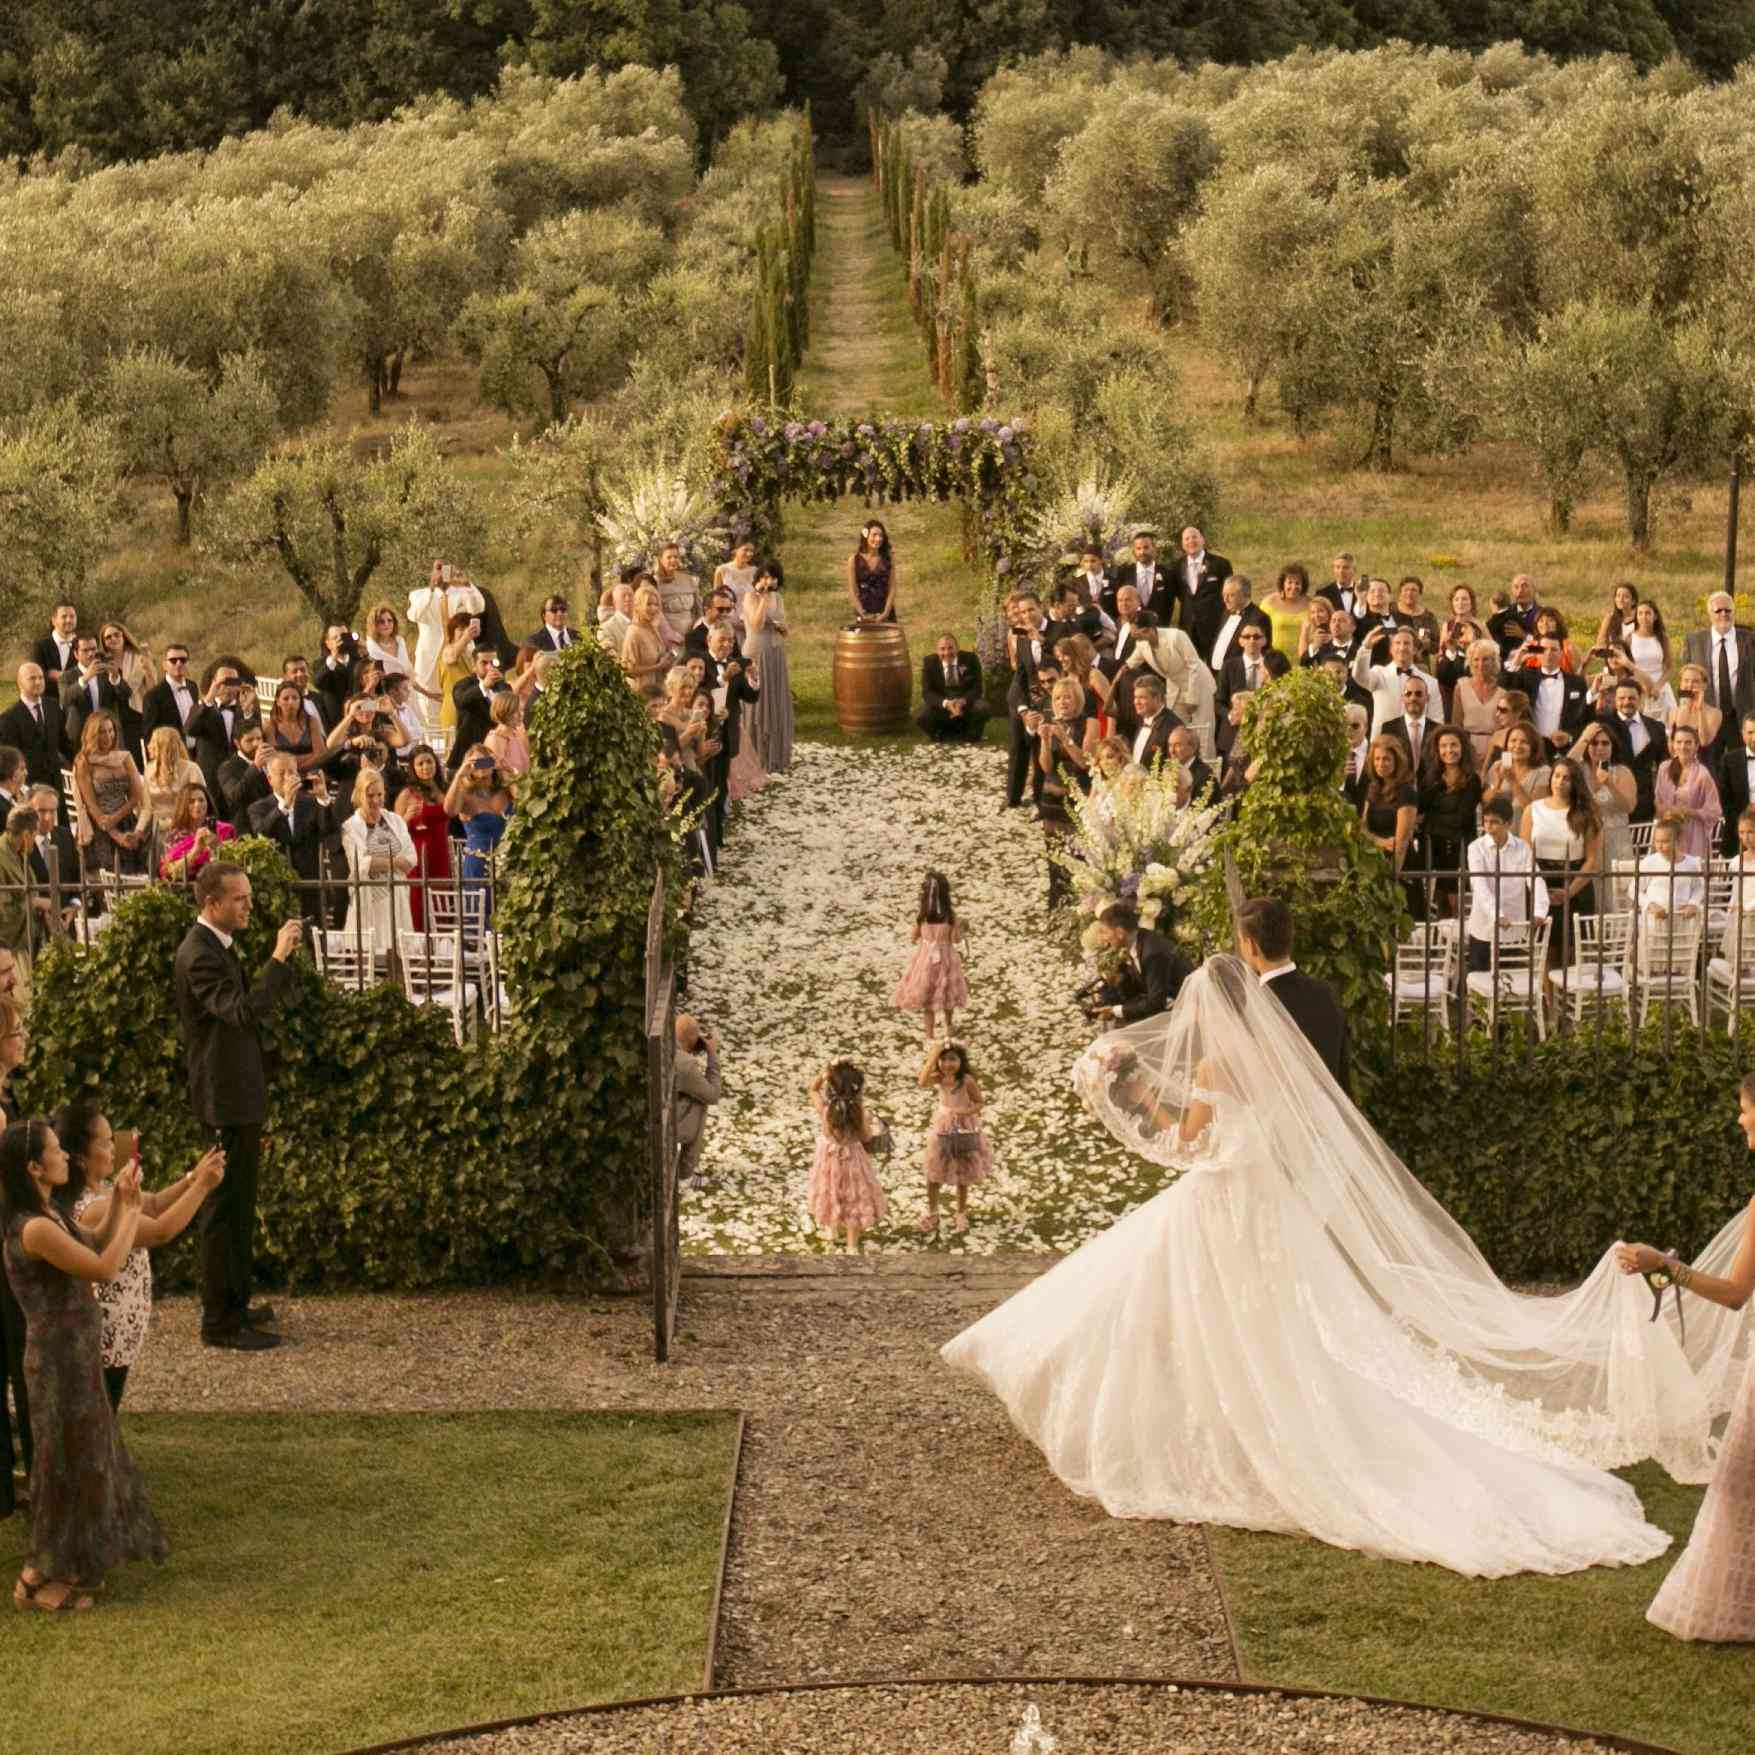 Wedding Honeymoon Ideas: How To Host A Destination Wedding In Tuscany's Small Towns